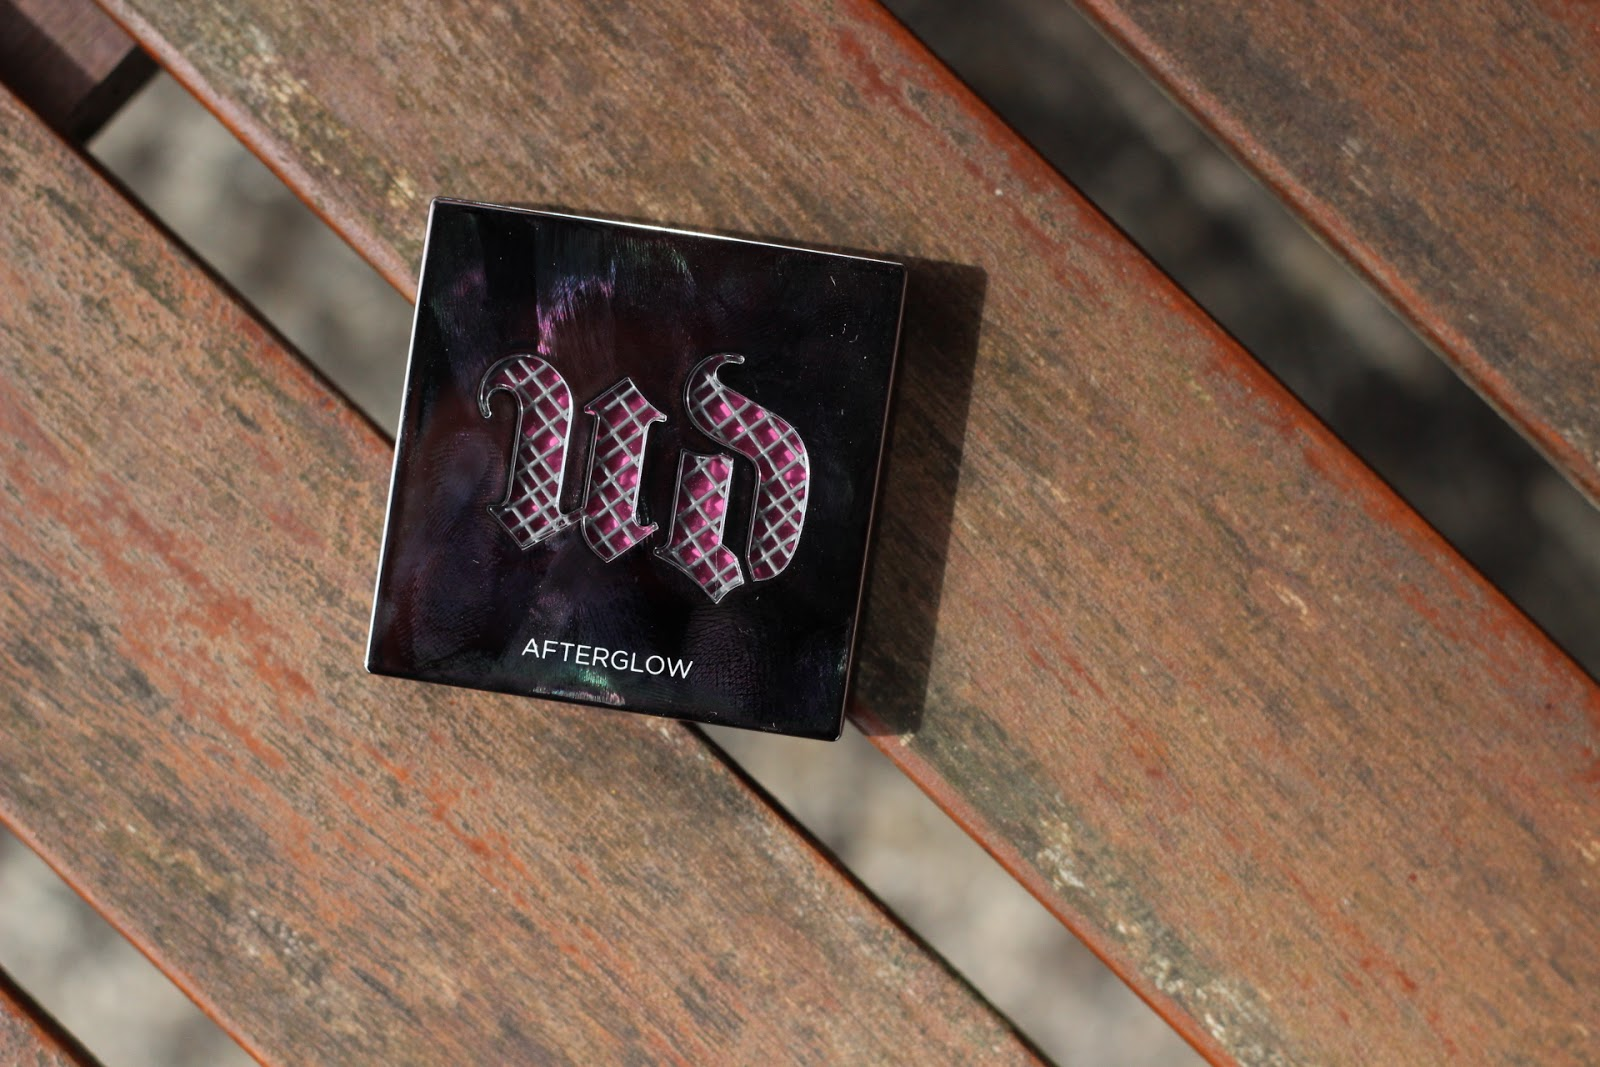 Urban Decay Afterglow 8 Hour Powder Blush